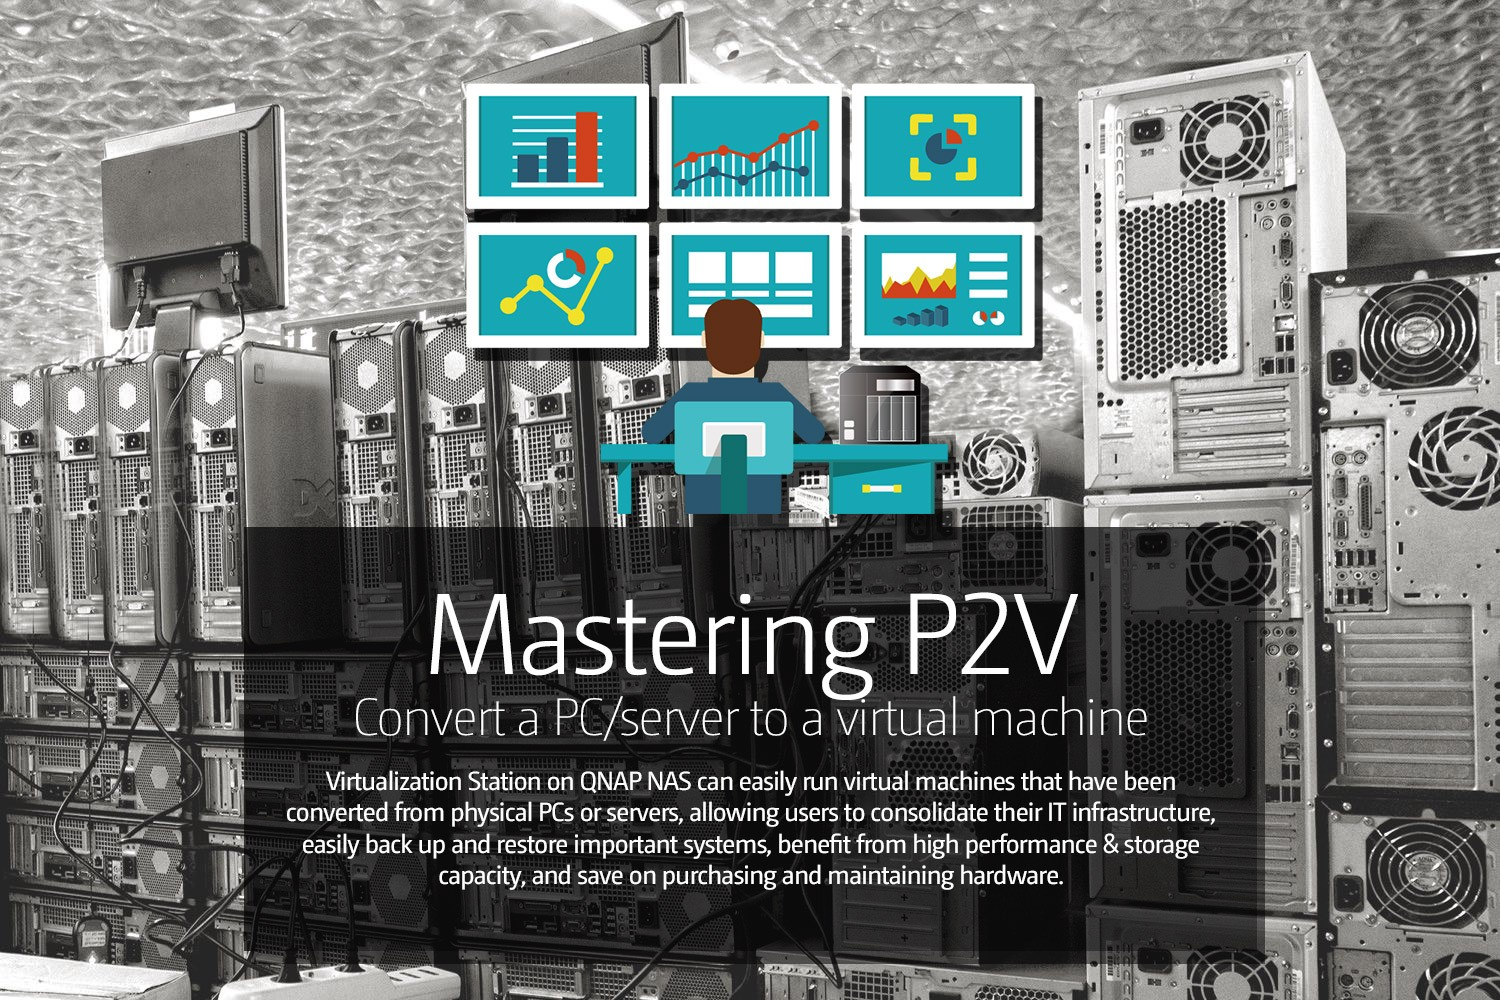 Mastering-P2V-Convert-a-PC-or-server-to-a-VMware-or-QNAP-virtual-machine.